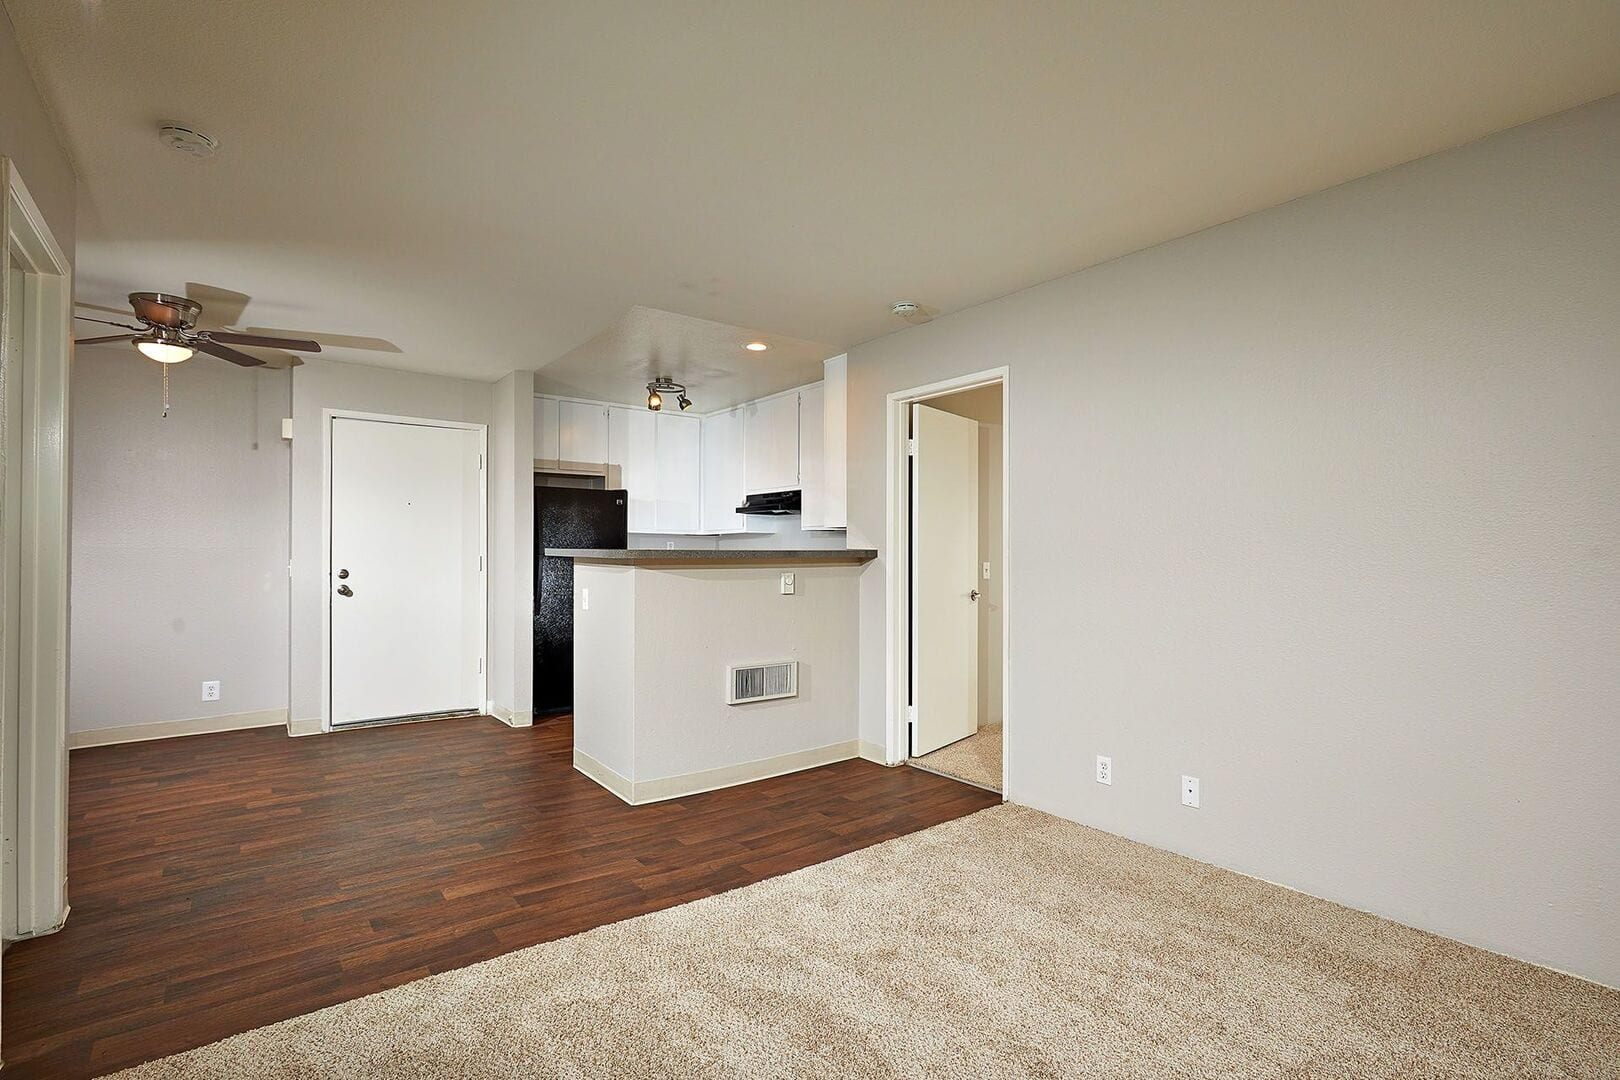 Apartments for Rent in San Diego, CA | Parkview Terrace - Home